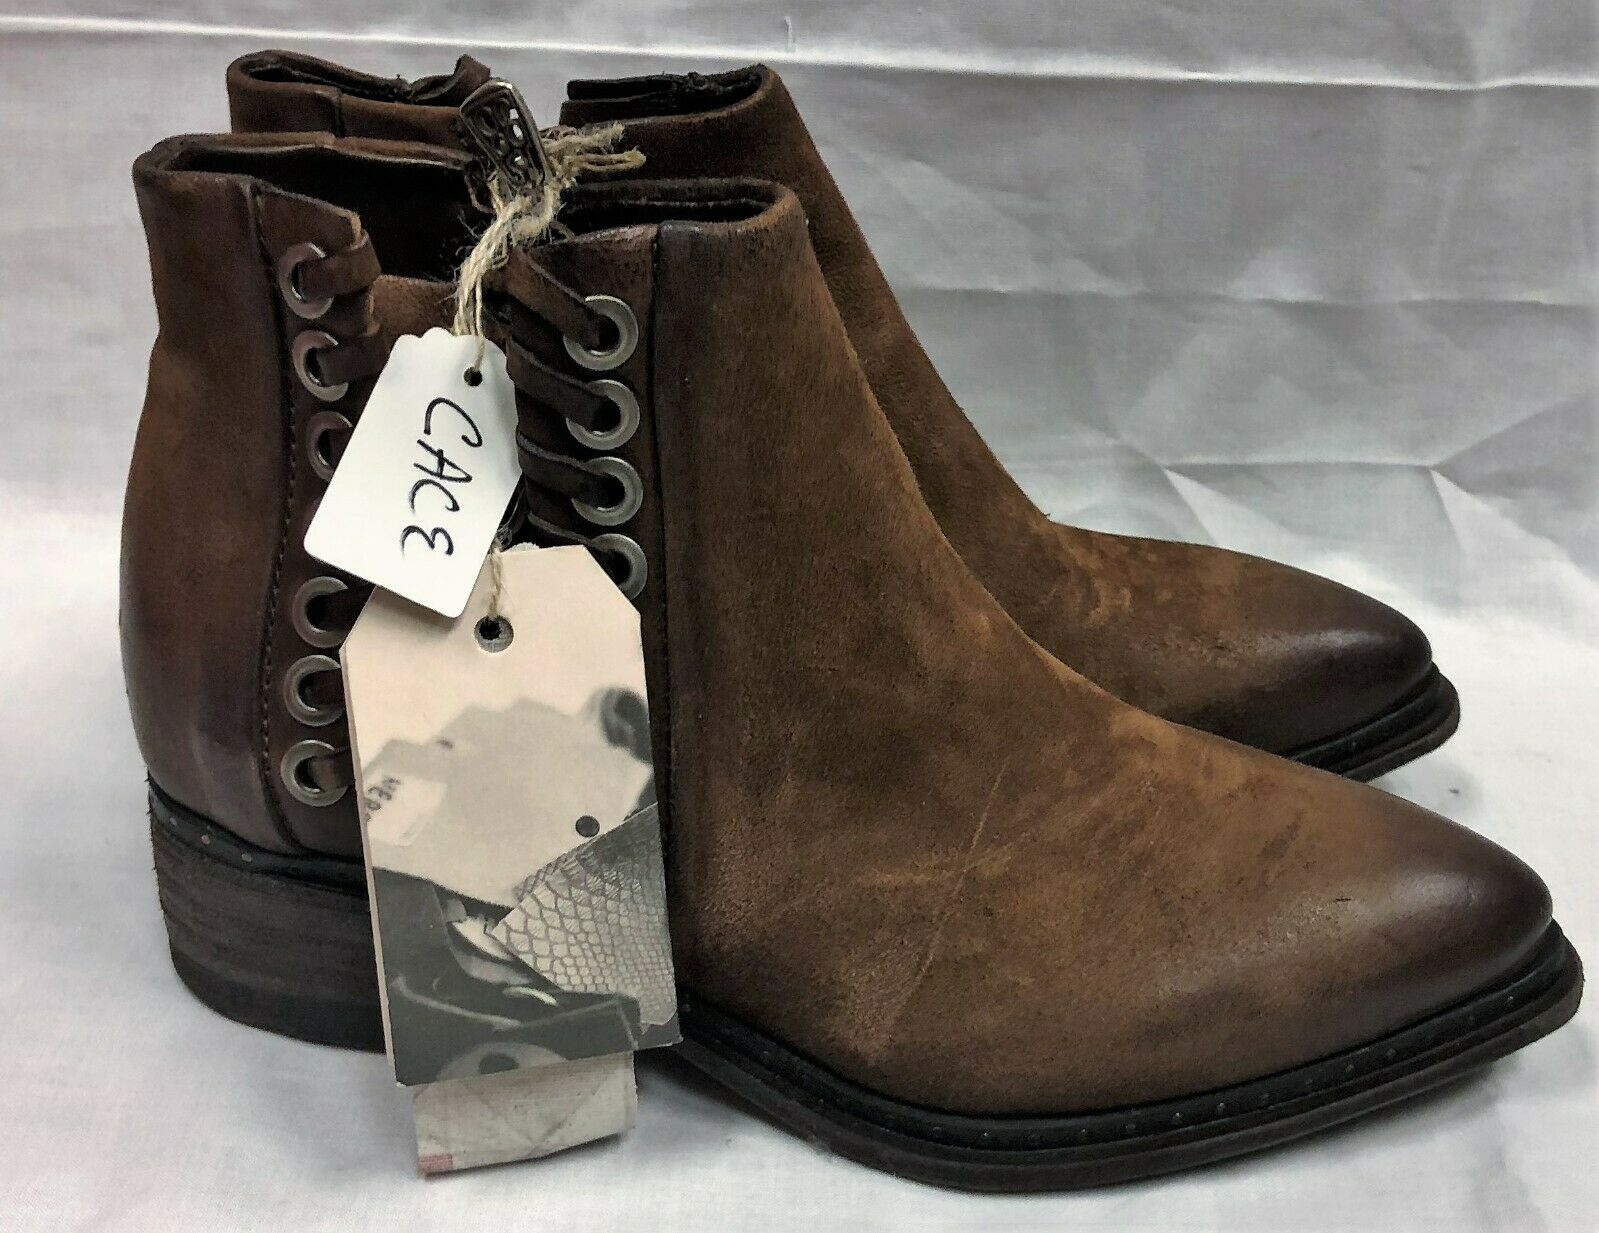 New in Box A.S.98 Women's Cace Style Calvados color Boots Size EU 36 US 5